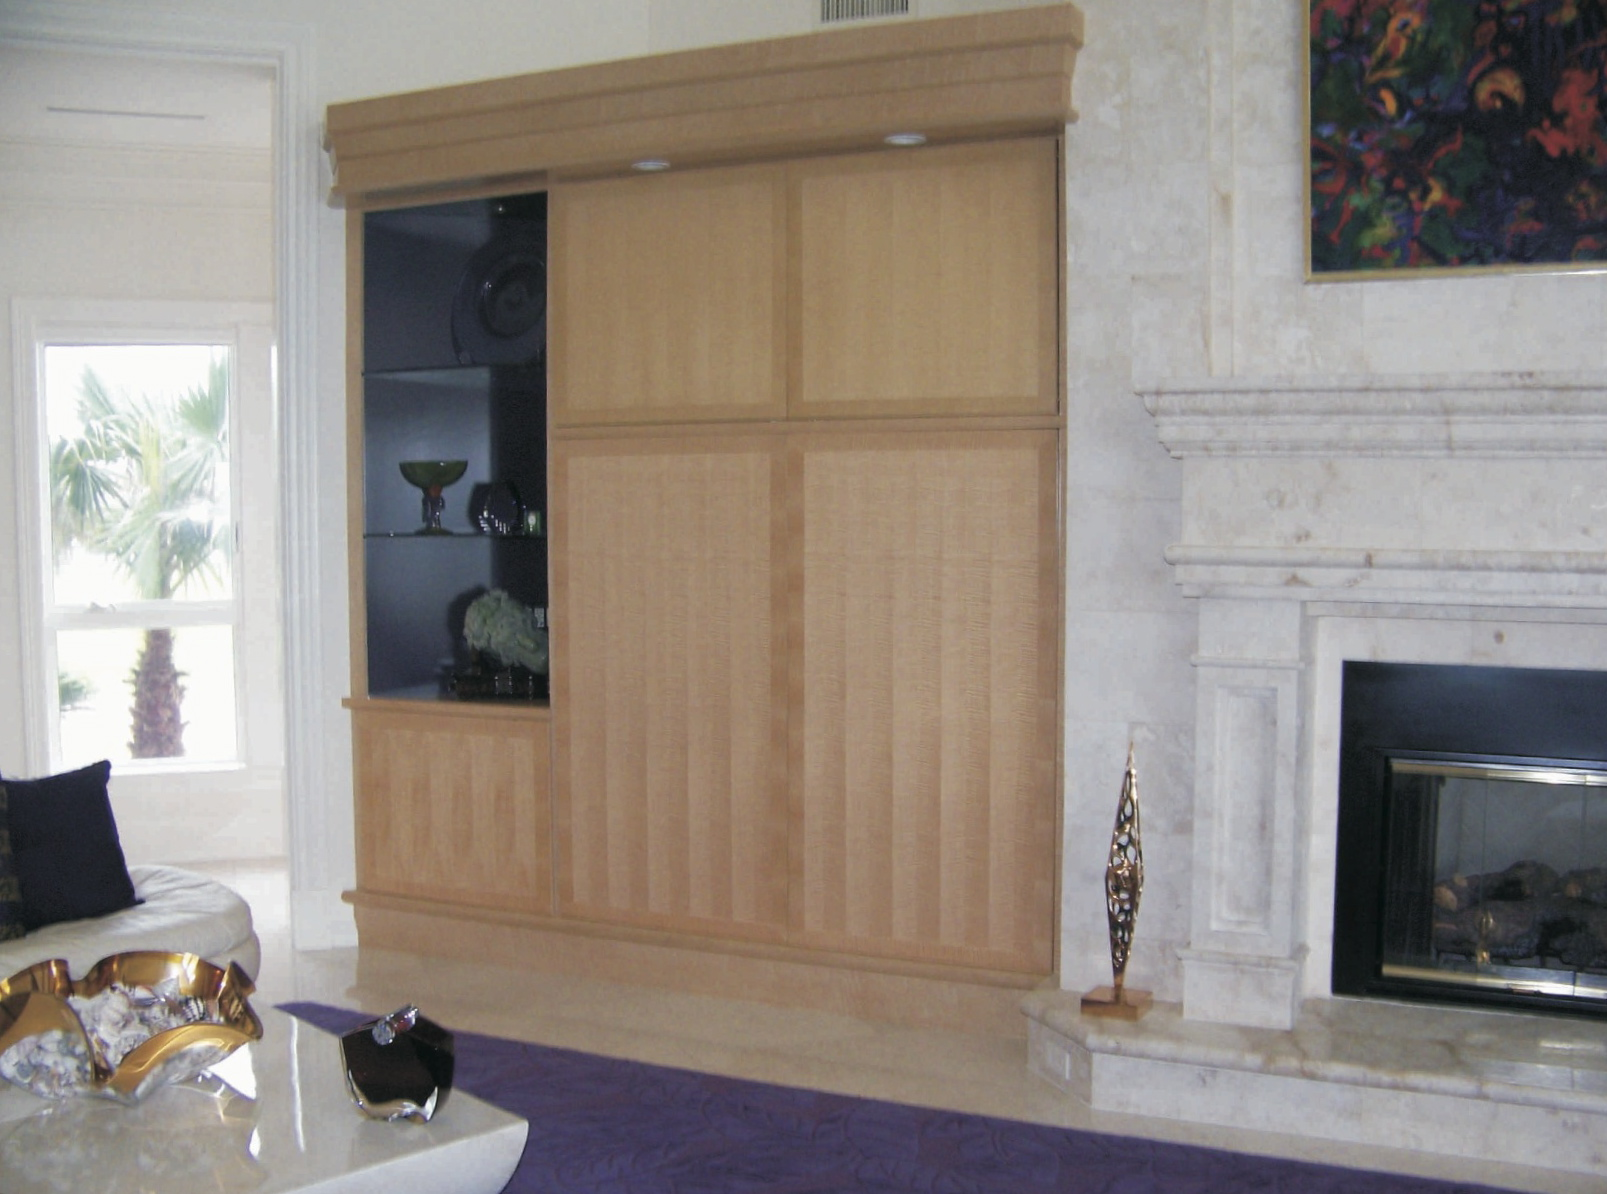 Sycamore with pattern, left side of great room display storage<br />cabinet - Sailfish Point